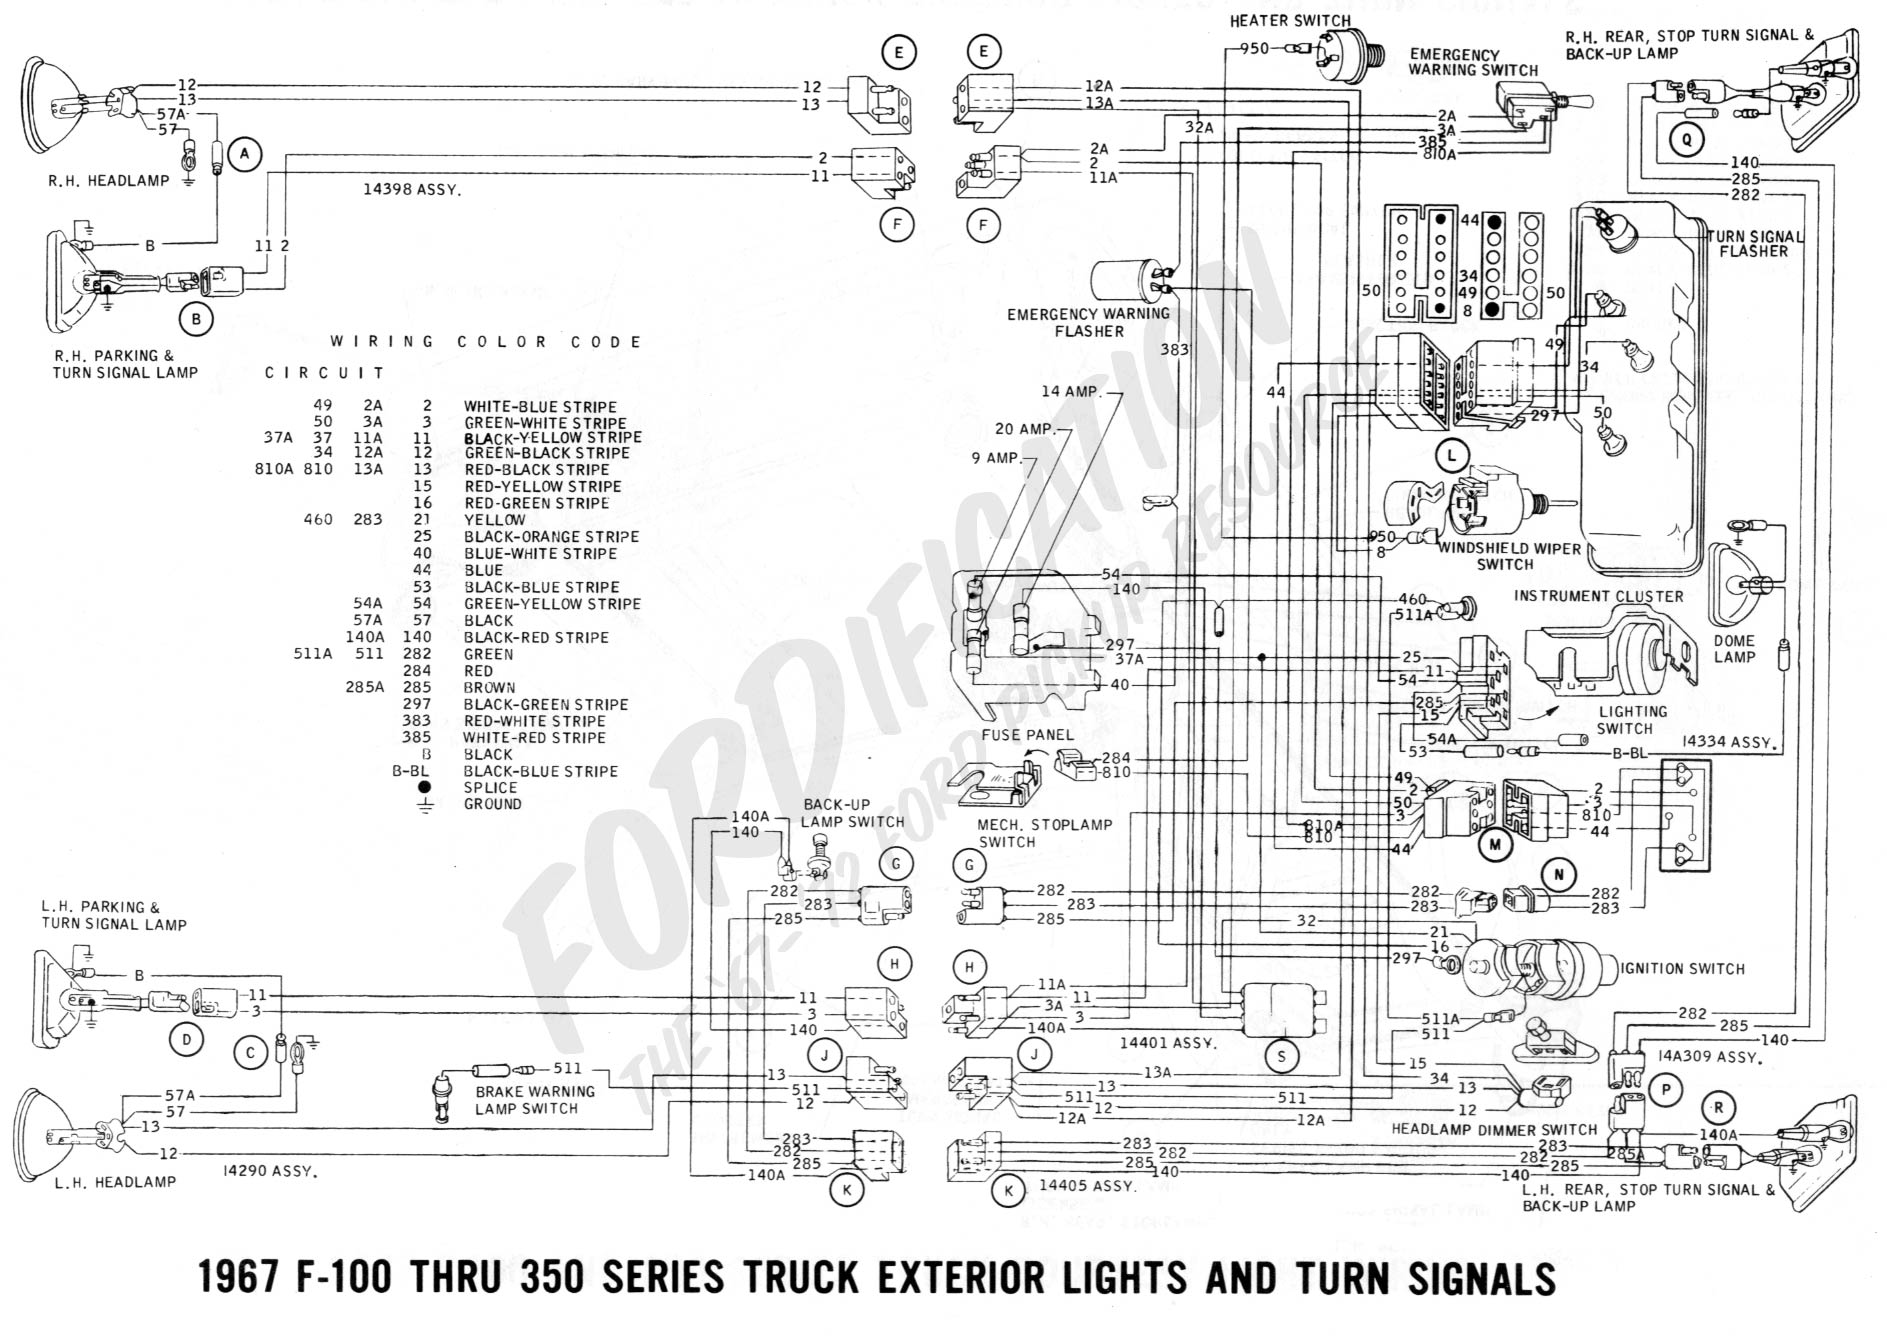 2006 ford f350 automatic transmission wire diagram best wiring library rh 74 princestaash org